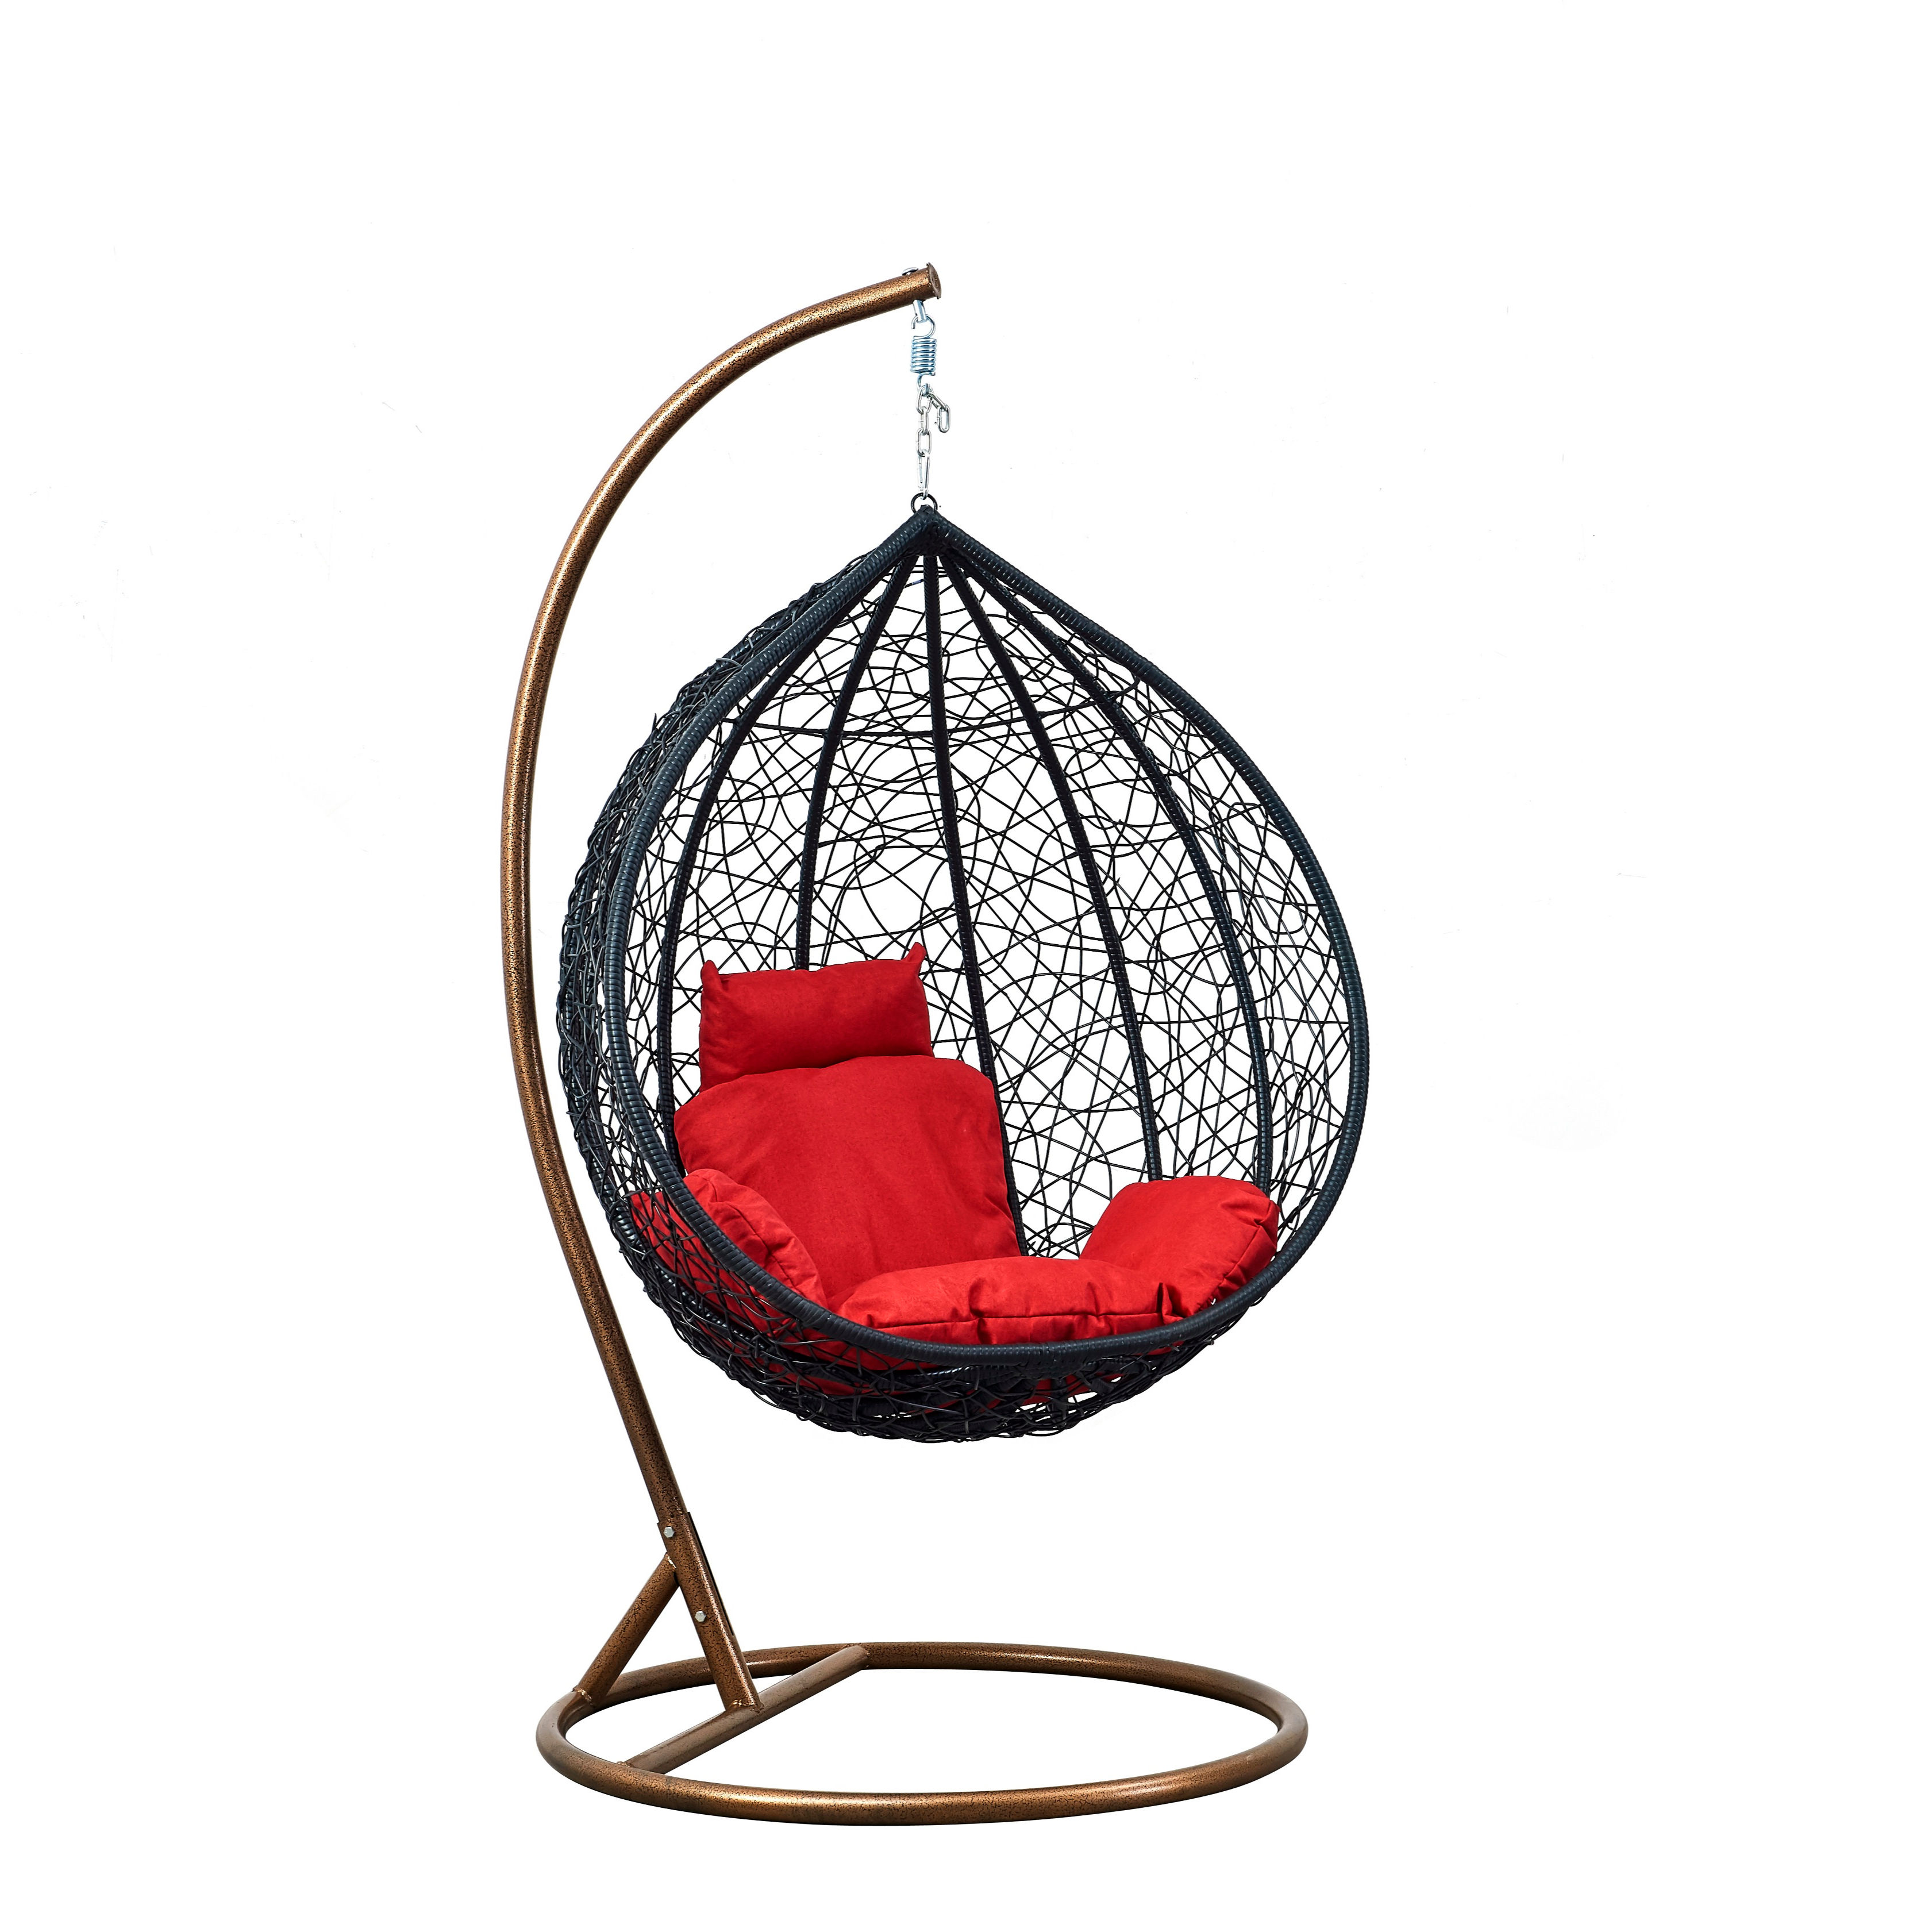 Hot Selling Garden Rattan Swinging Chairs Hanging Egg Chair Cheap Leisure Wicker Patio Swing Chair